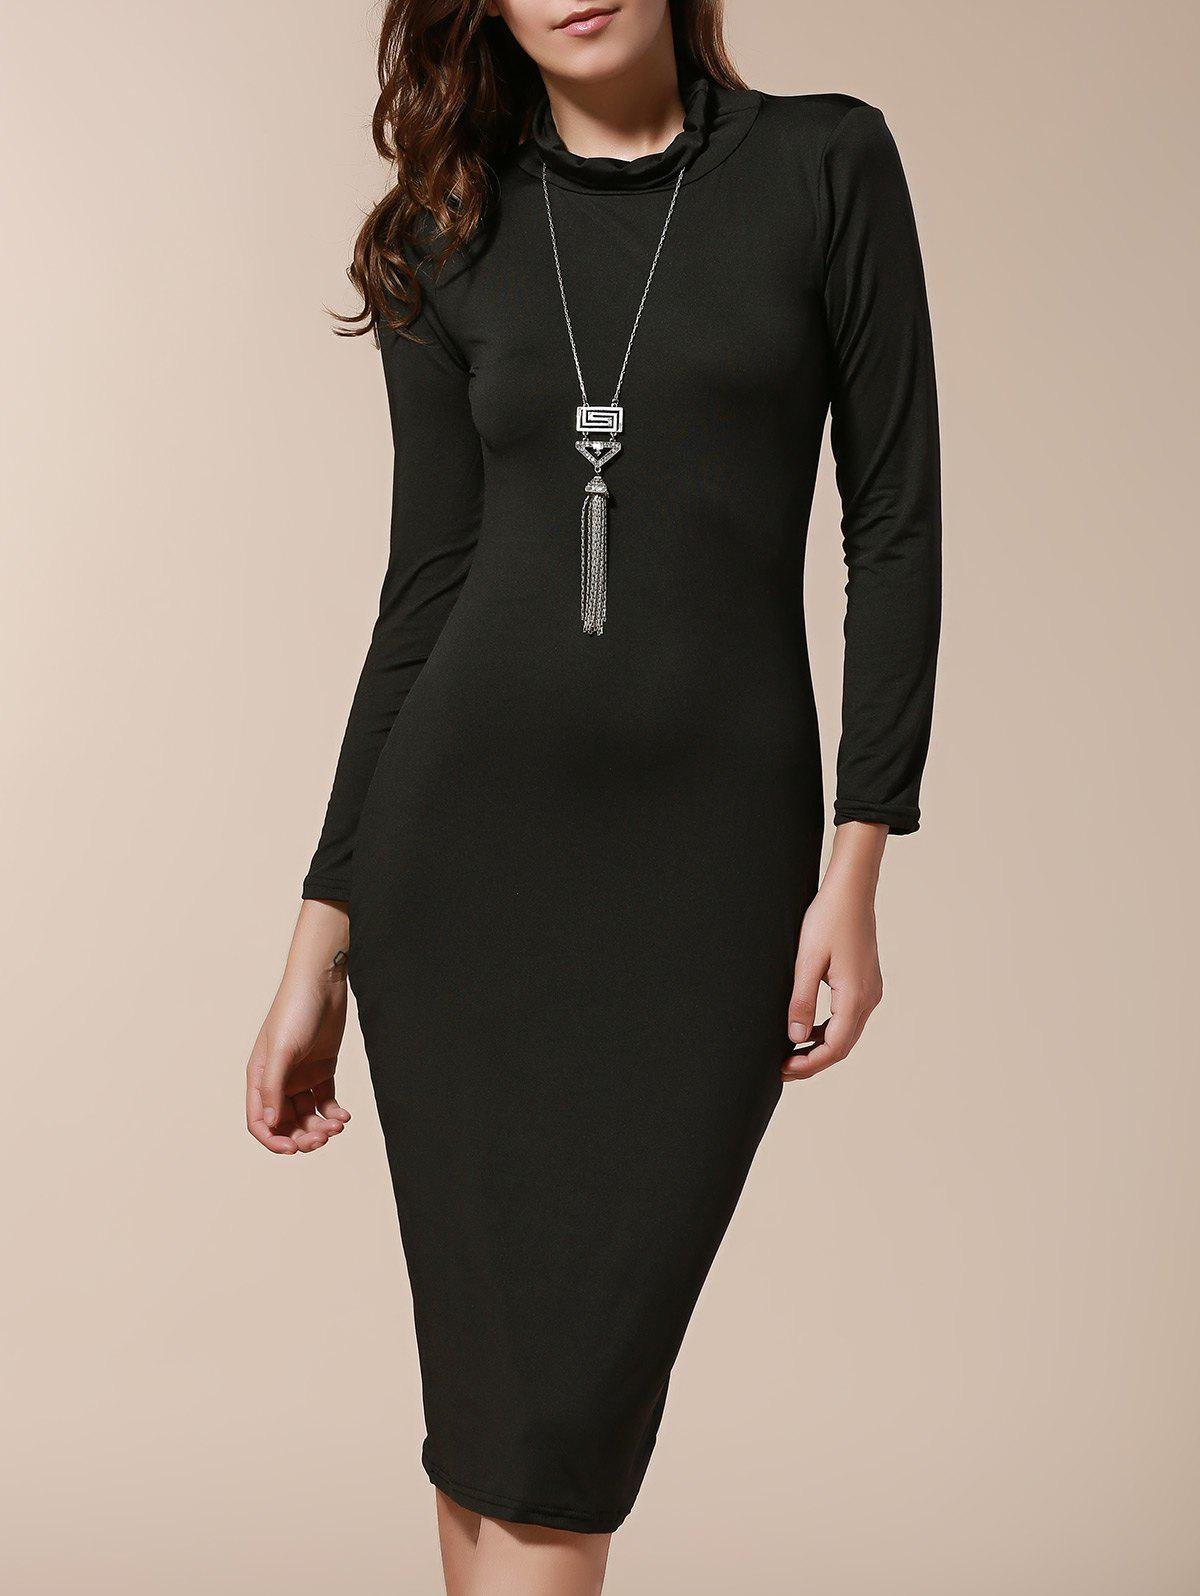 Simple Turtle Neck Long Sleeve Solid Color Slimming Womens DressWOMEN<br><br>Size: S; Color: BLACK; Style: Brief; Material: Cotton Blend; Silhouette: Sheath; Dresses Length: Mid-Calf; Neckline: Turtleneck; Sleeve Length: Long Sleeves; Pattern Type: Solid; With Belt: No; Season: Fall,Spring; Weight: 0.263kg; Package Contents: 1 x Dress;